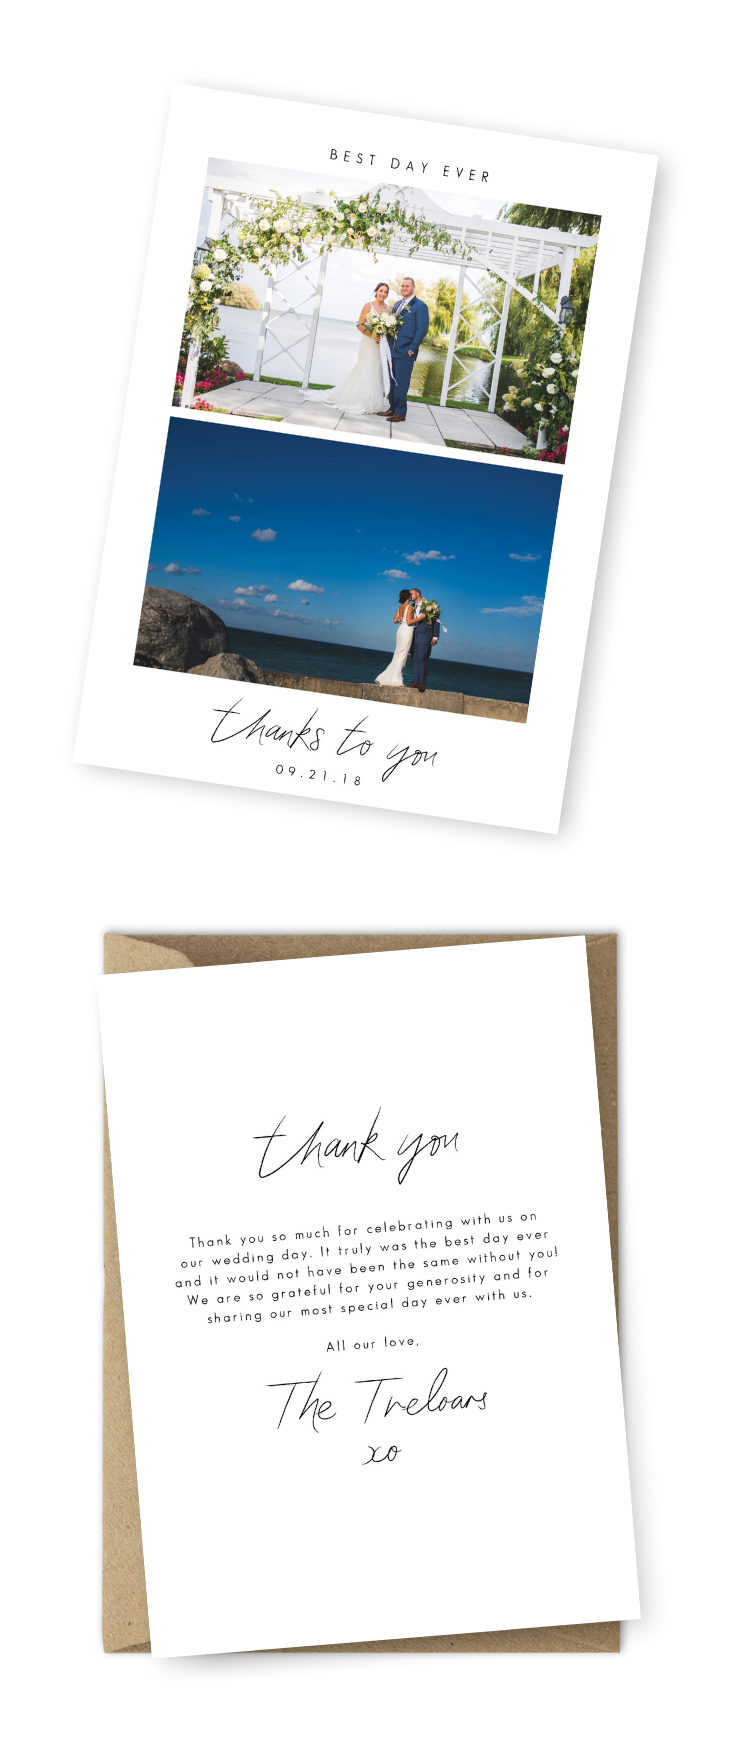 10 Wording Examples For Your Wedding Thank You Cards Regarding Template For Wedding Thank You Cards